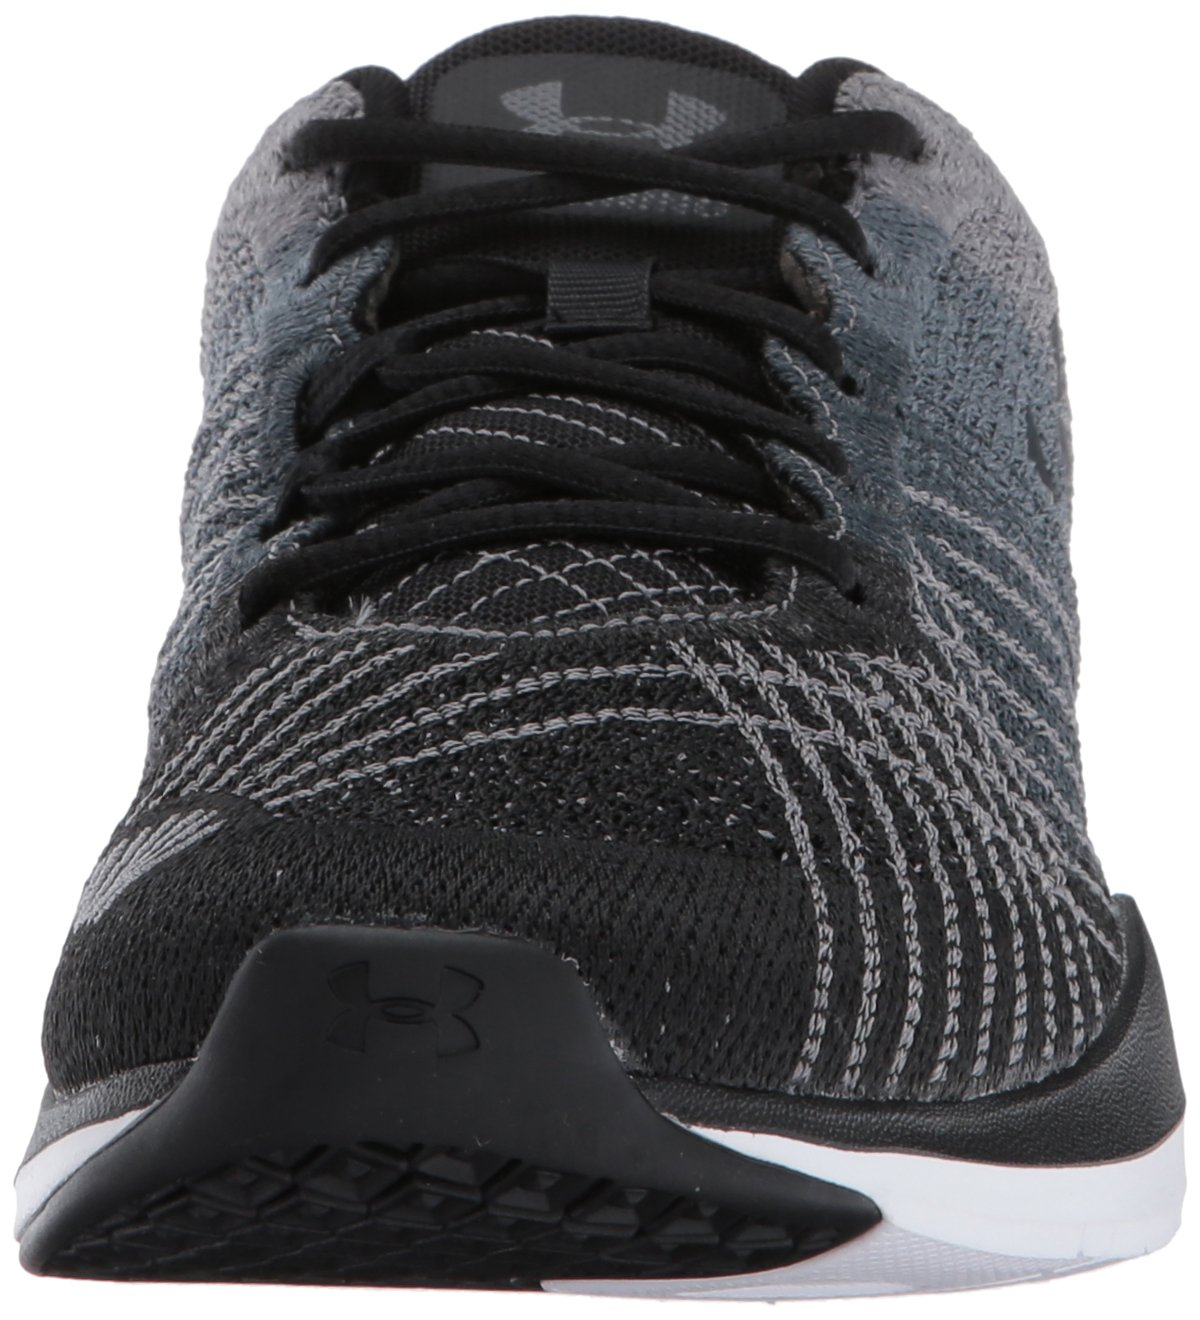 Under Armour Women's Threadborne Push Cross-Trainer Shoe B01MYZW9AW 7 M US|Black (001)/Steel